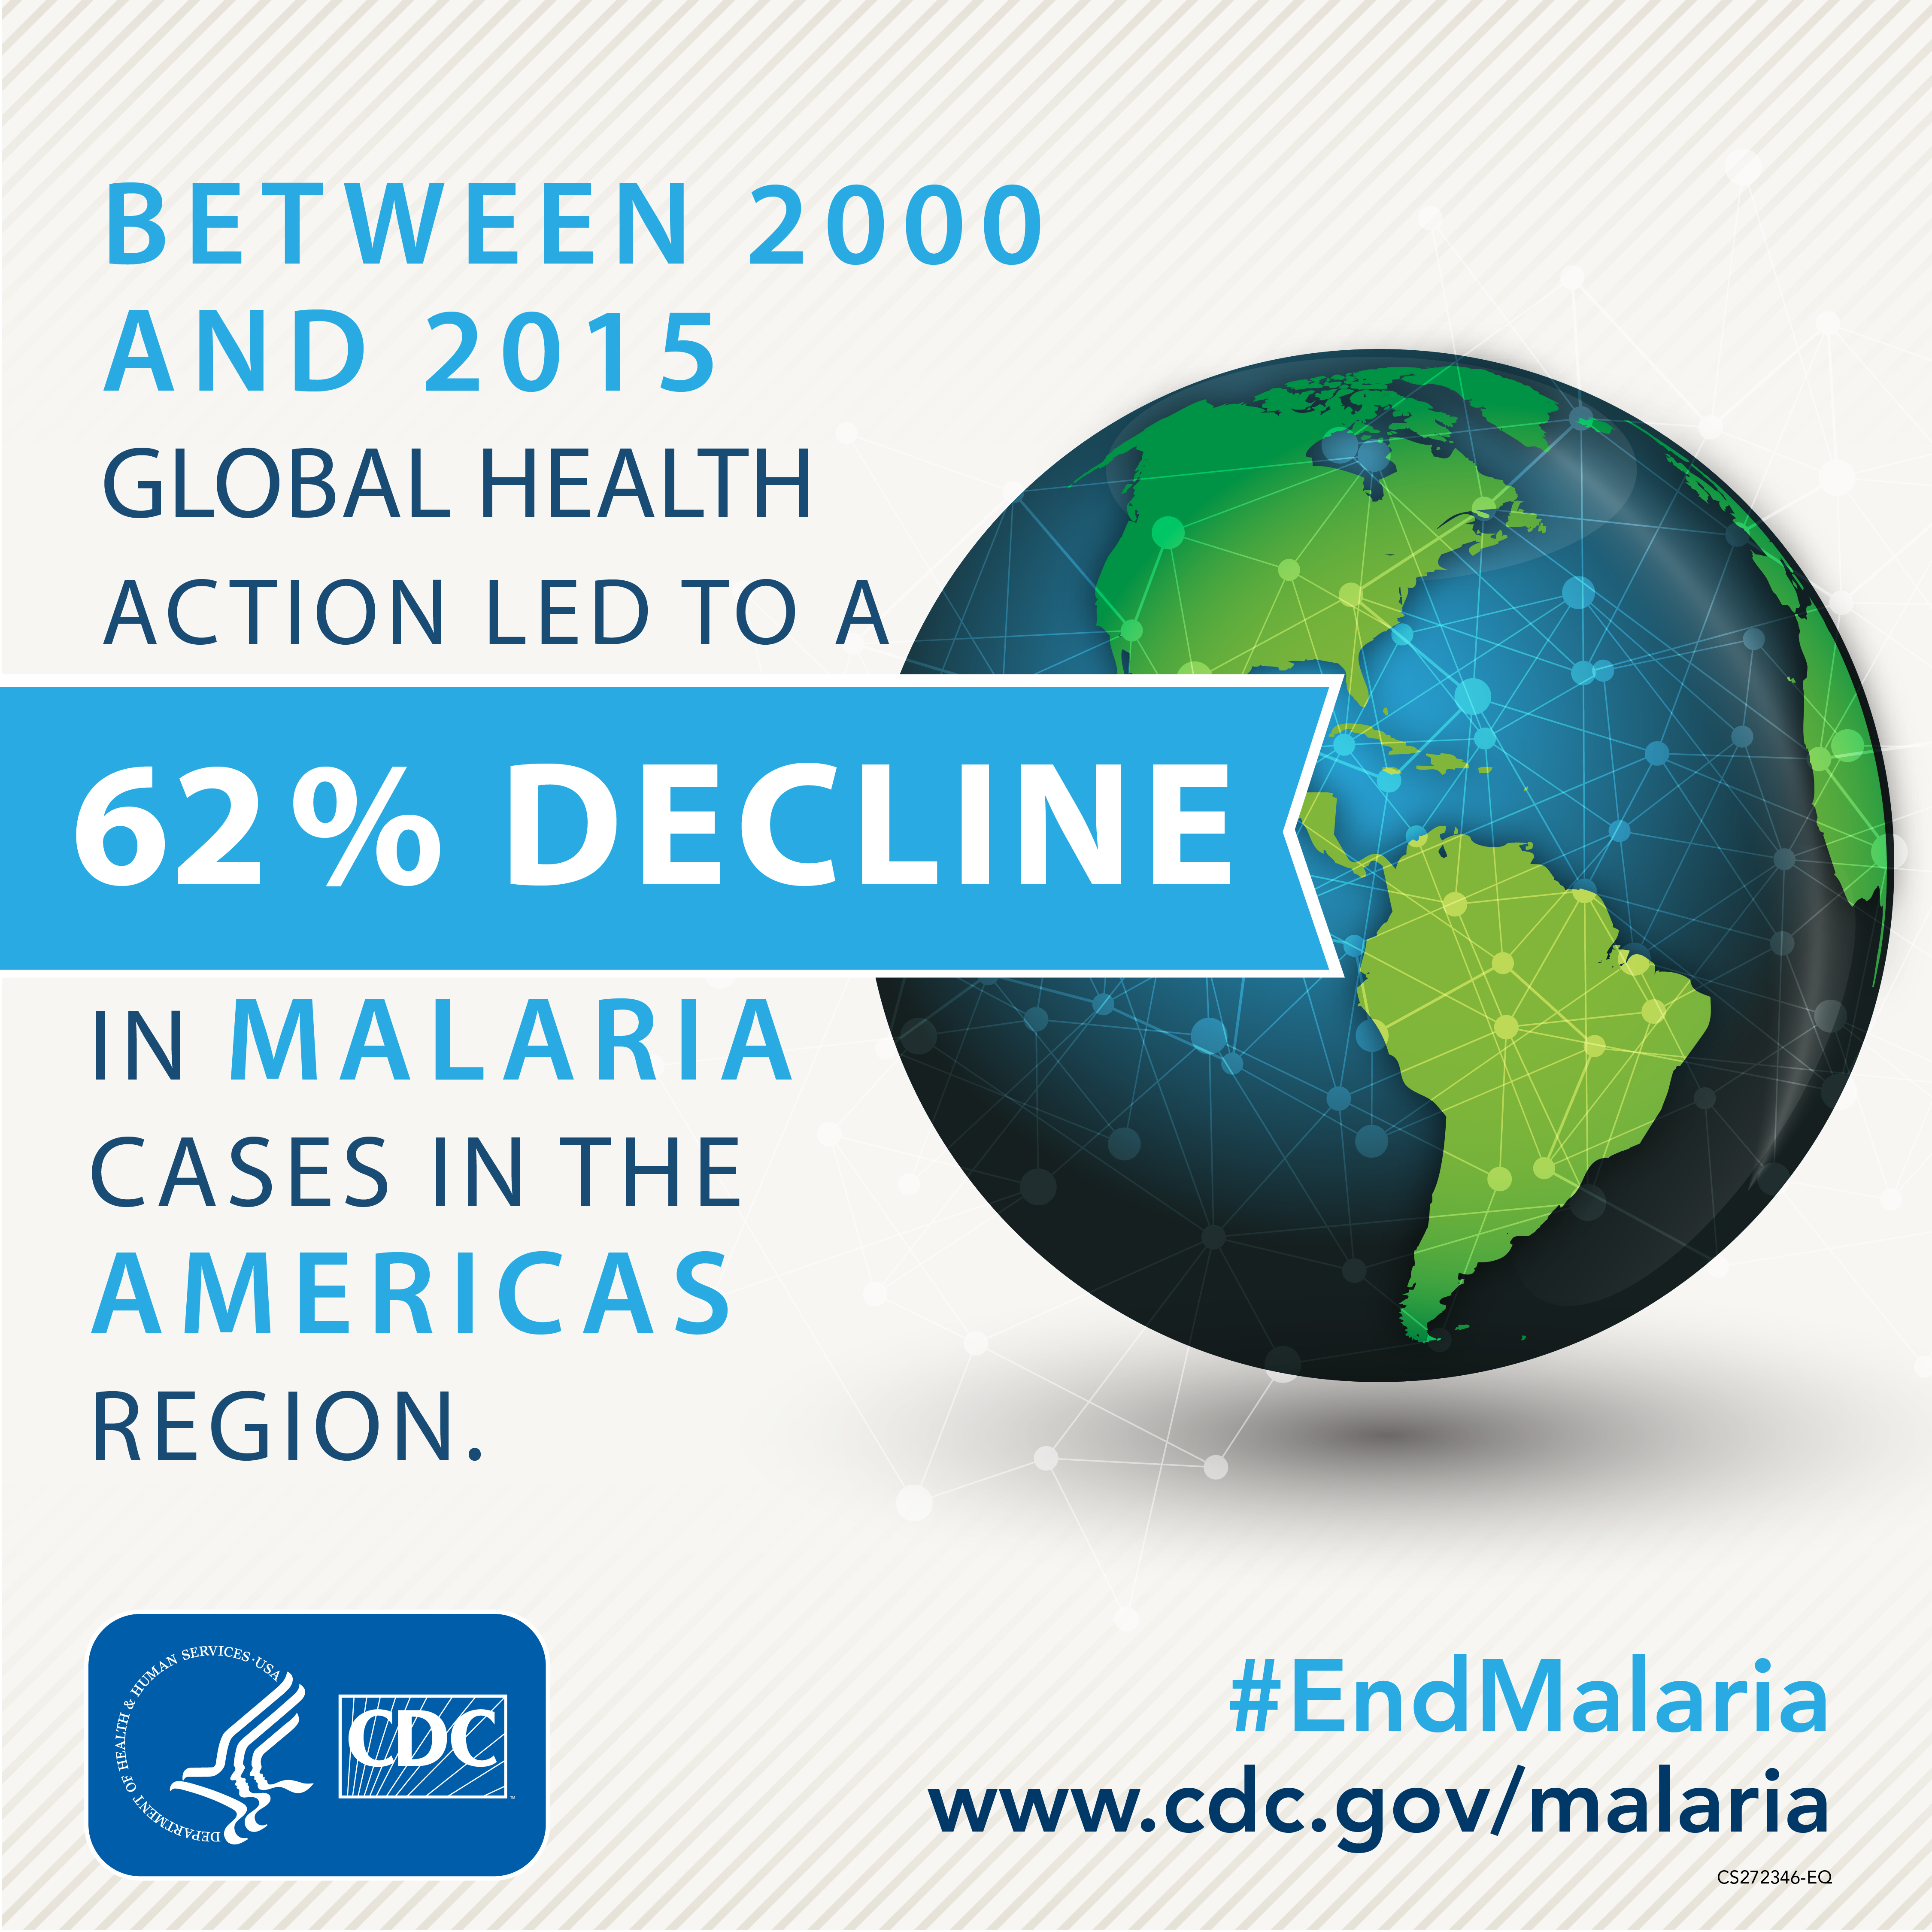 Between 2000 and 2015 global health led to a 62% decline in malaria cases in the Americas region